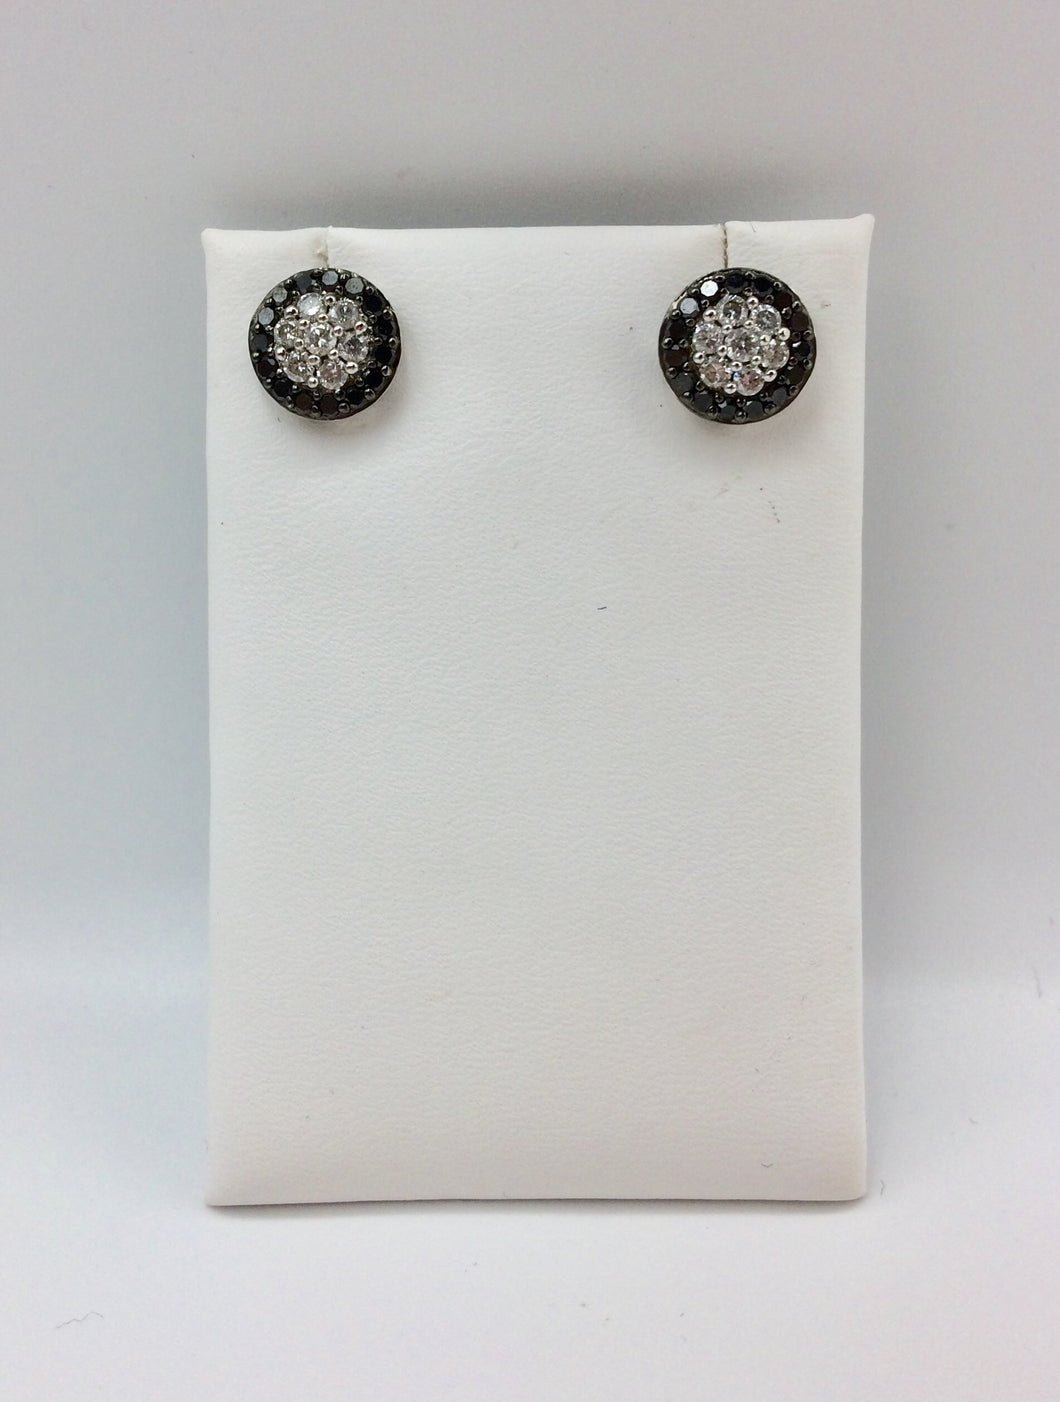 10K Black & White Diamond 1.0Ct Earrings